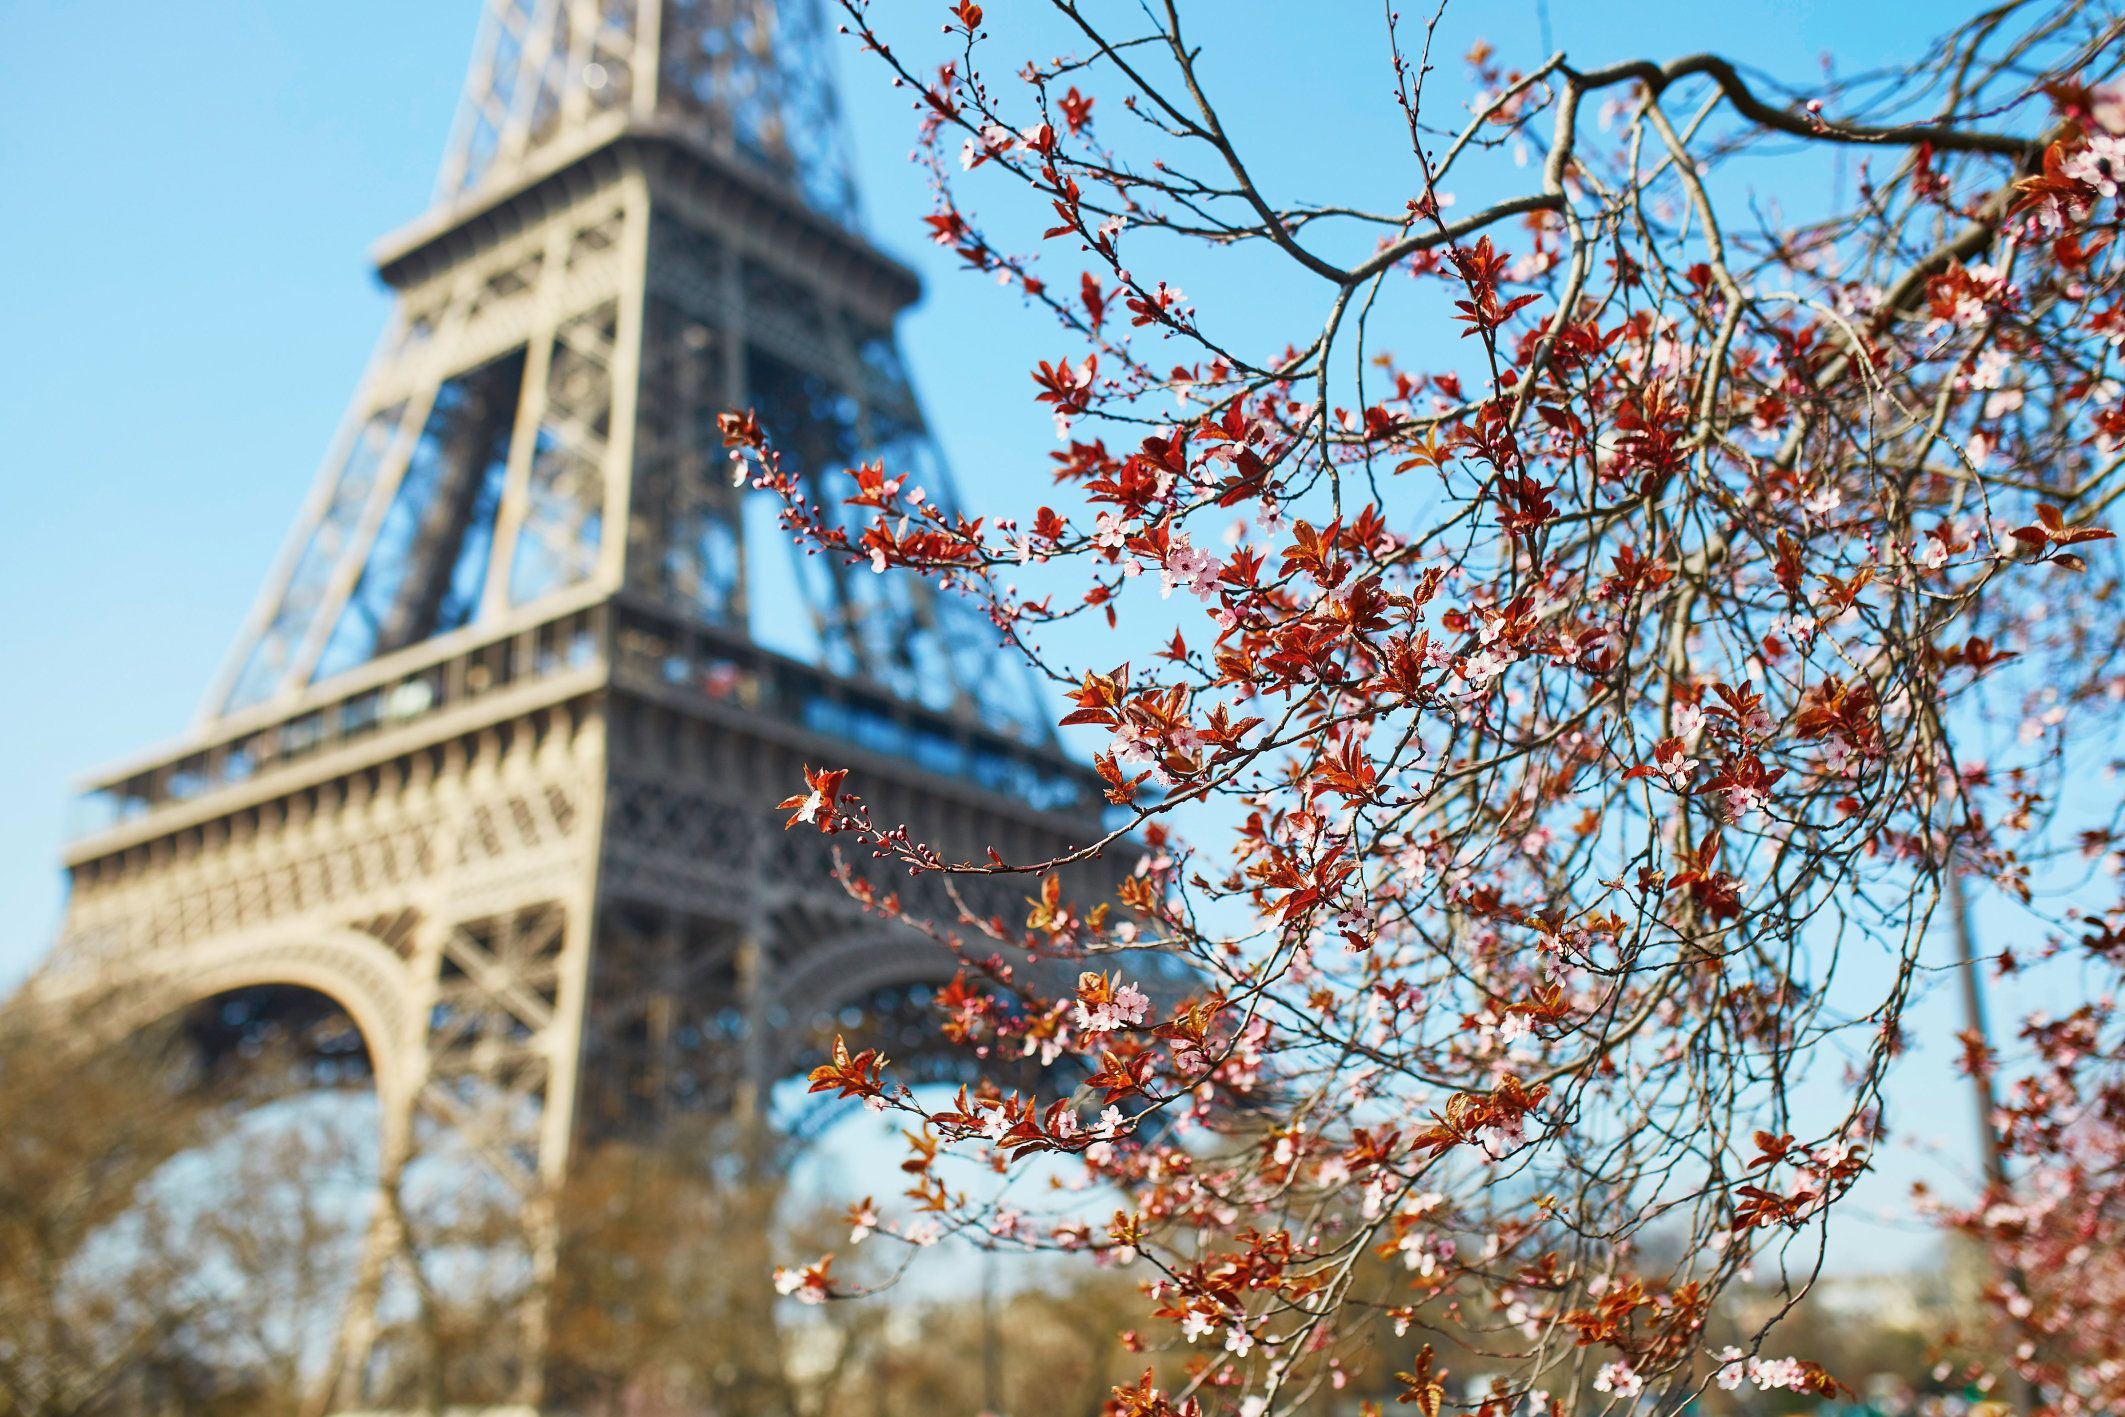 Beautiful pink cherry blossom in Paris near the Eiffel tower on a nice spring day with blue sky